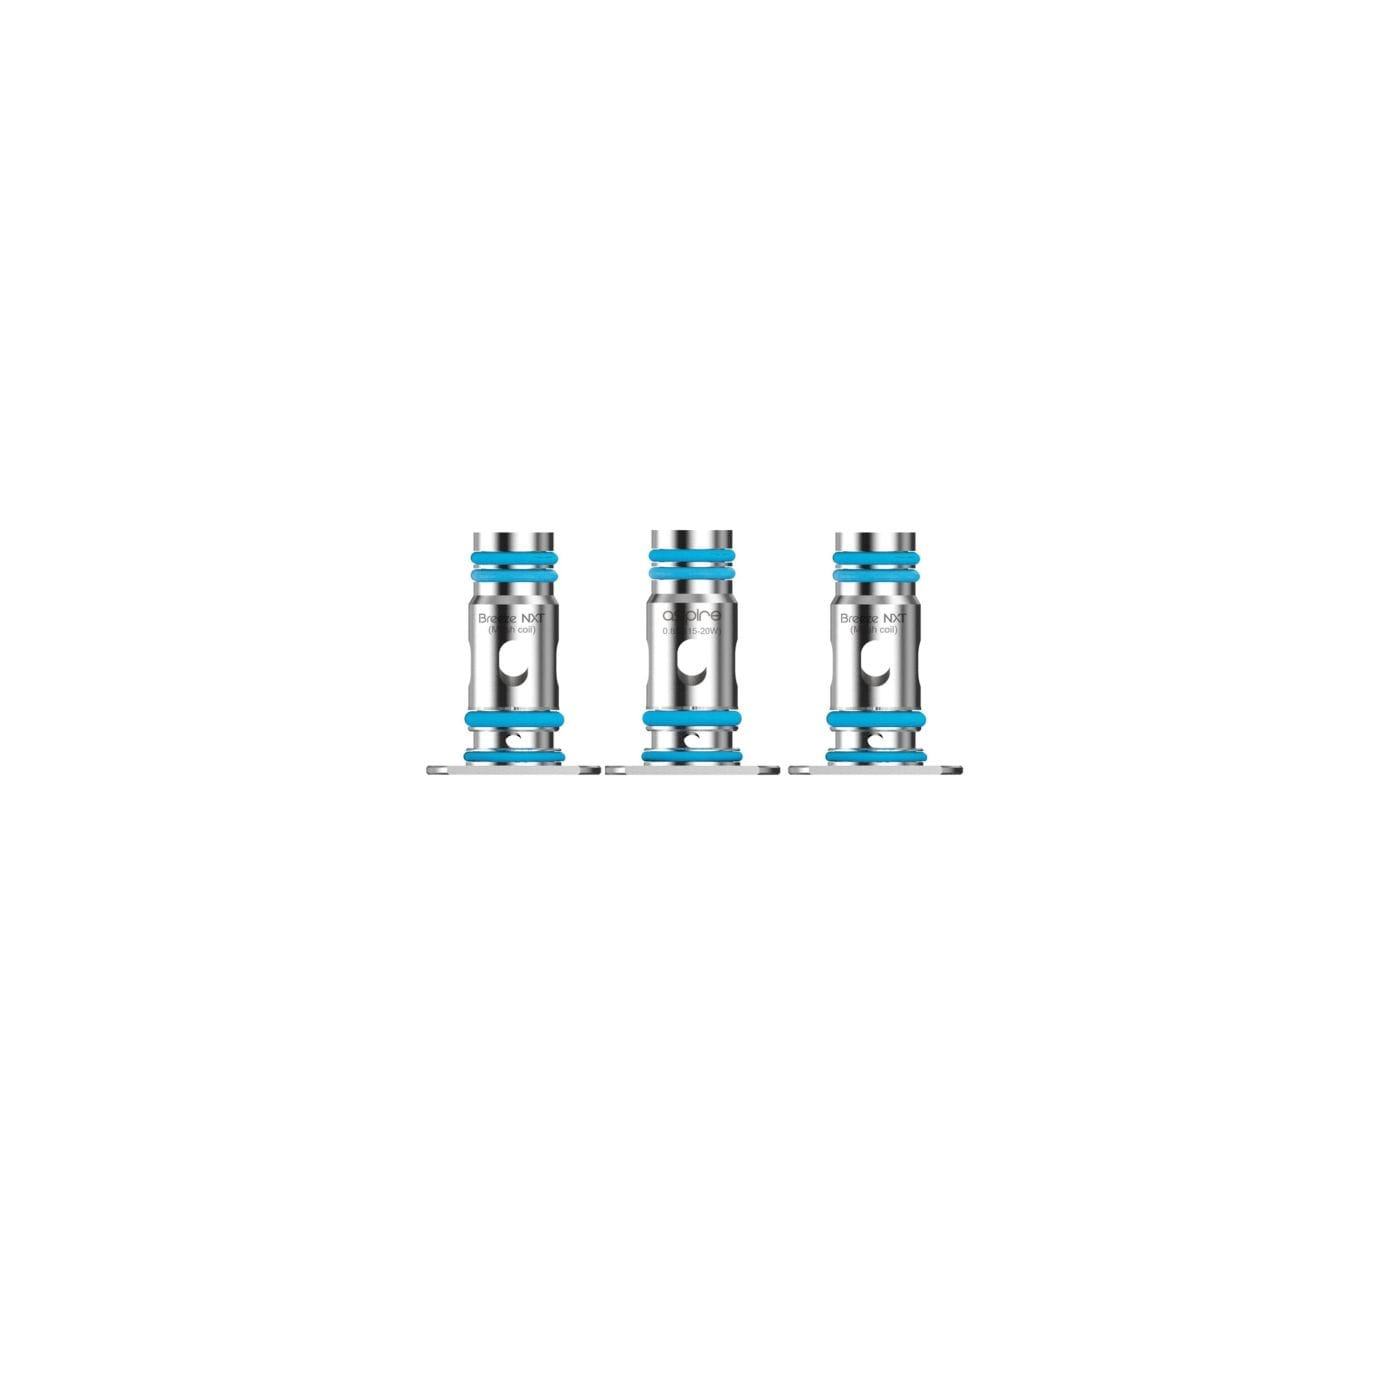 Aspire Breeze NXT Replacement Coil - 3 Pack